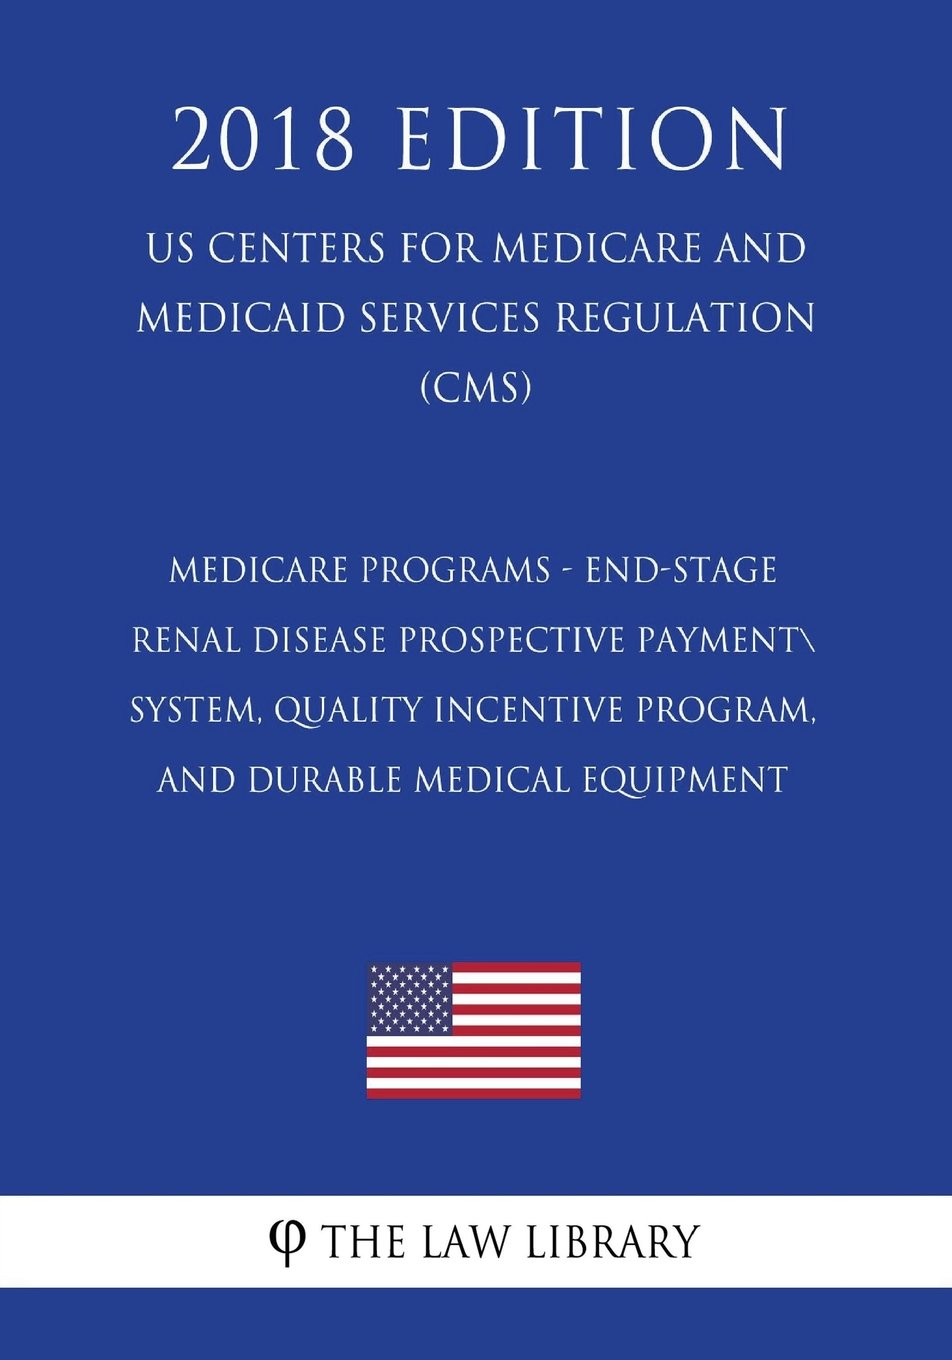 Download Medicare Programs - End-Stage Renal Disease Prospective Payment System, Quality Incentive Program, and Durable Medical Equipment (US Centers for ... Services Regulation) (CMS) (2018 Edition) PDF